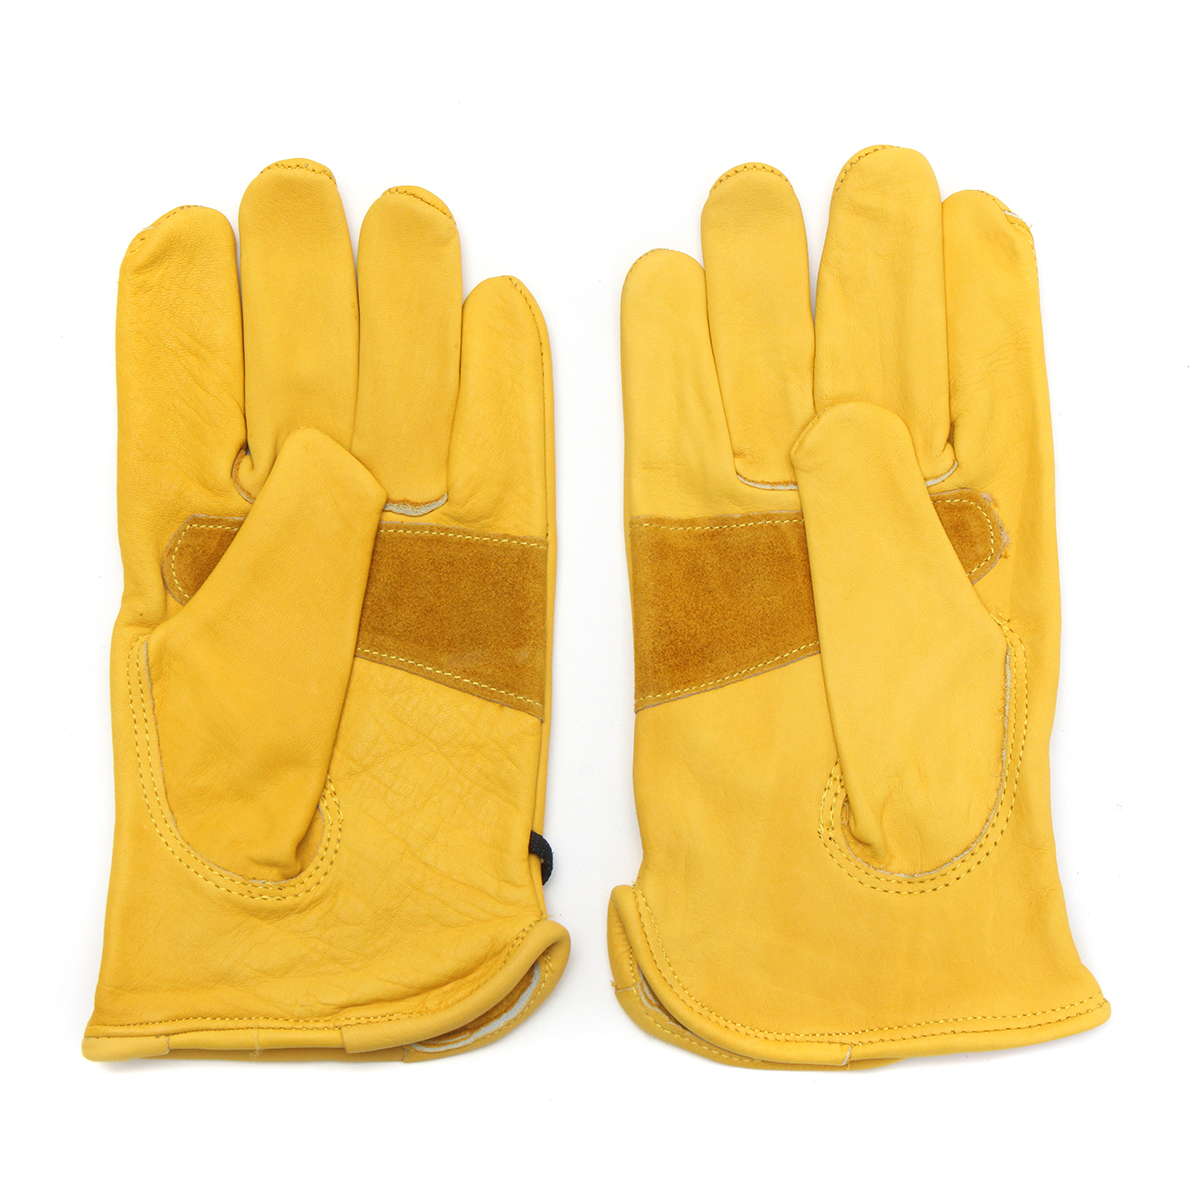 Vintage Leather Yellow Motorcycle Motorbike Sport Racing Gloves S M L XL